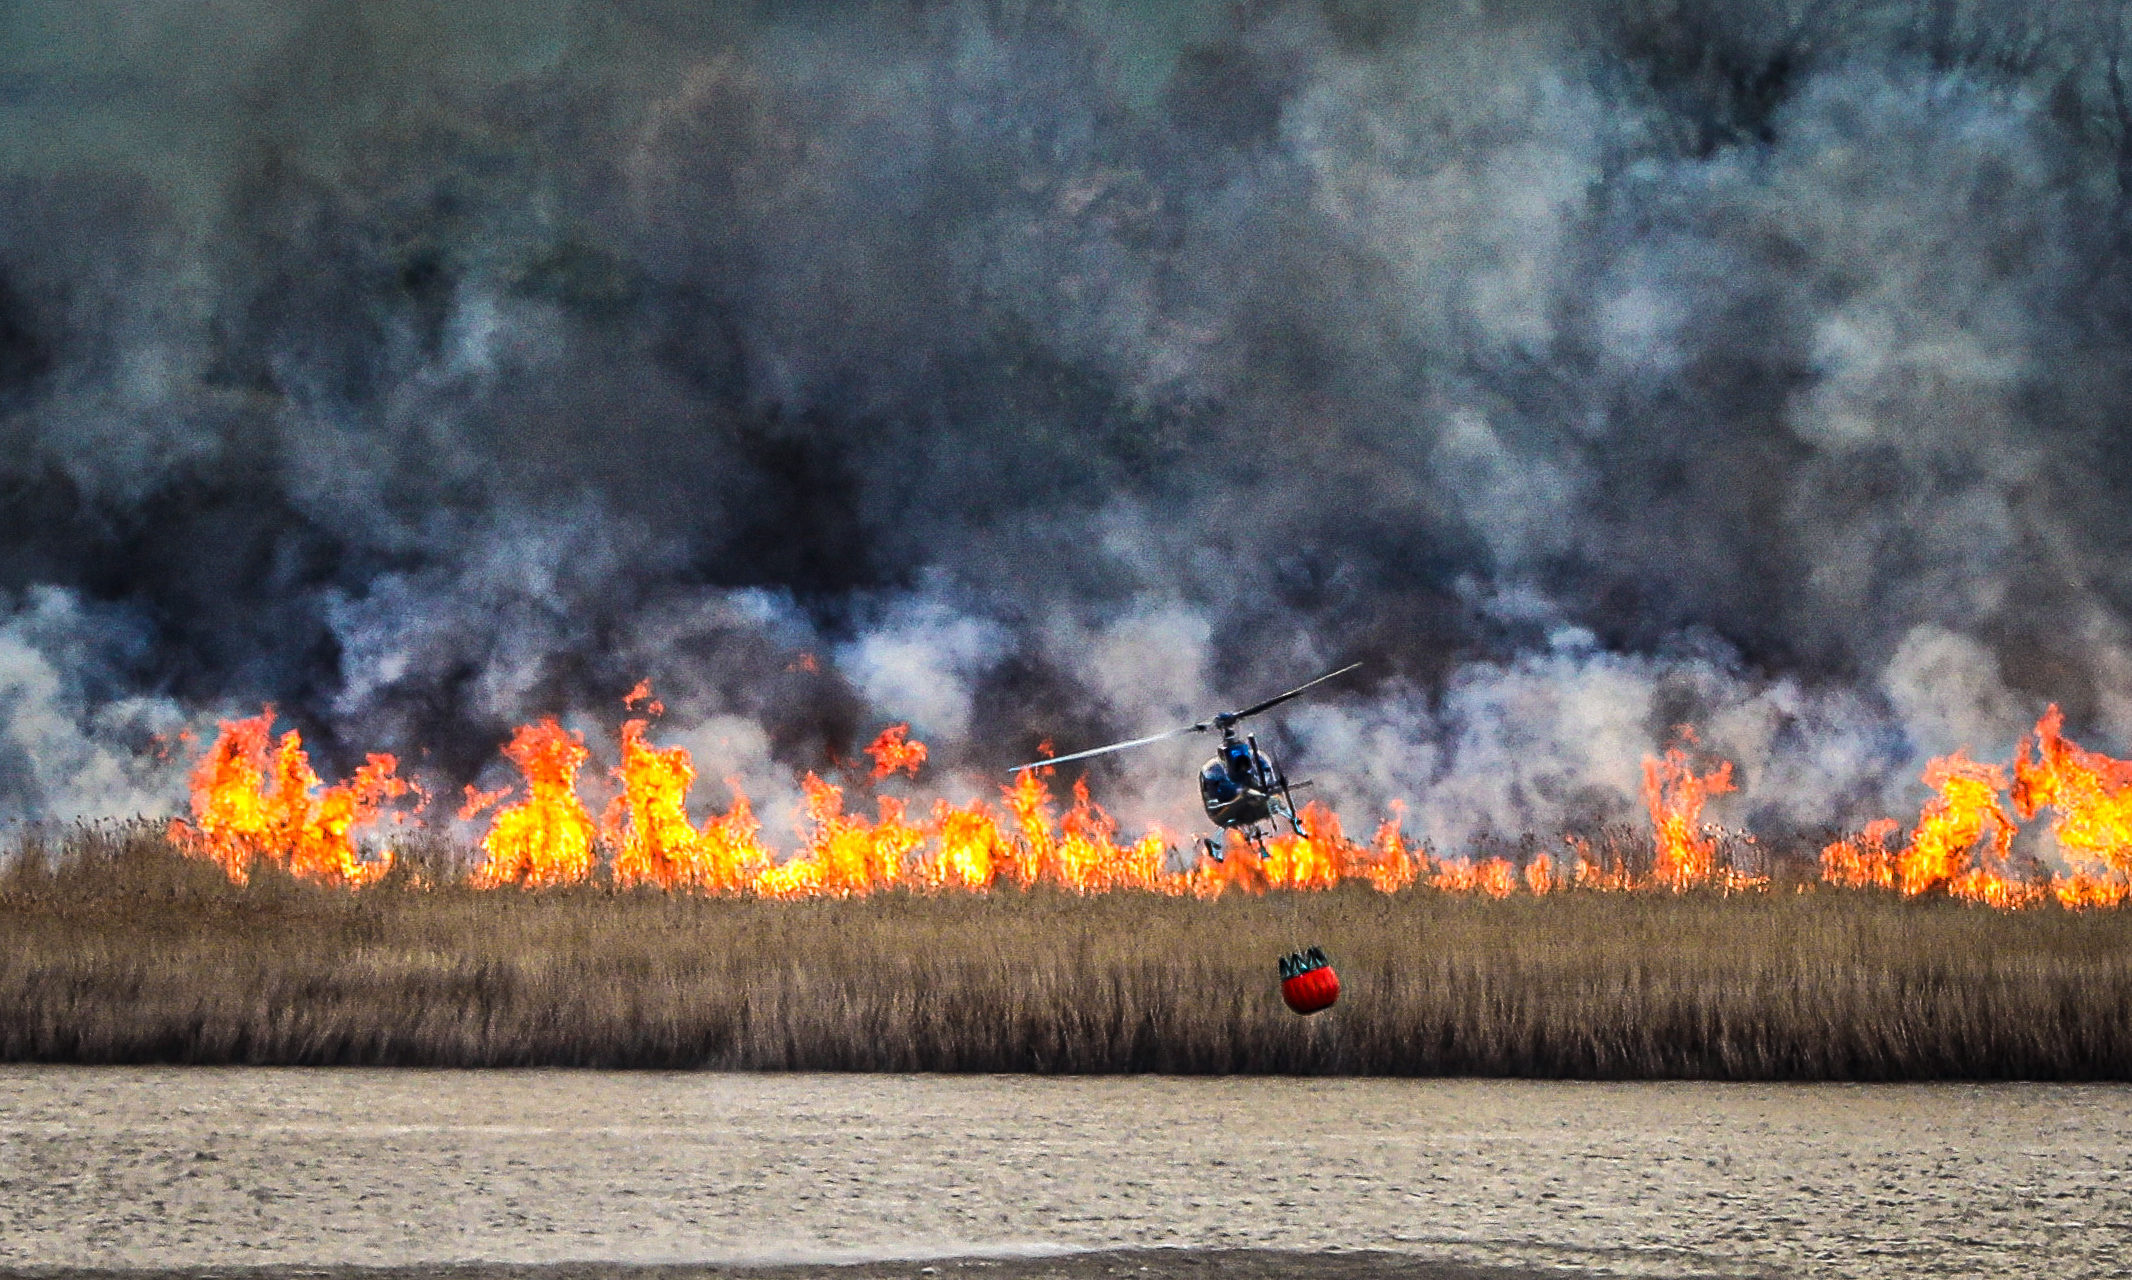 A helicopter is used to dump vast amounts of water onto the flames destroying the reed beds near Errol in Perthshire.